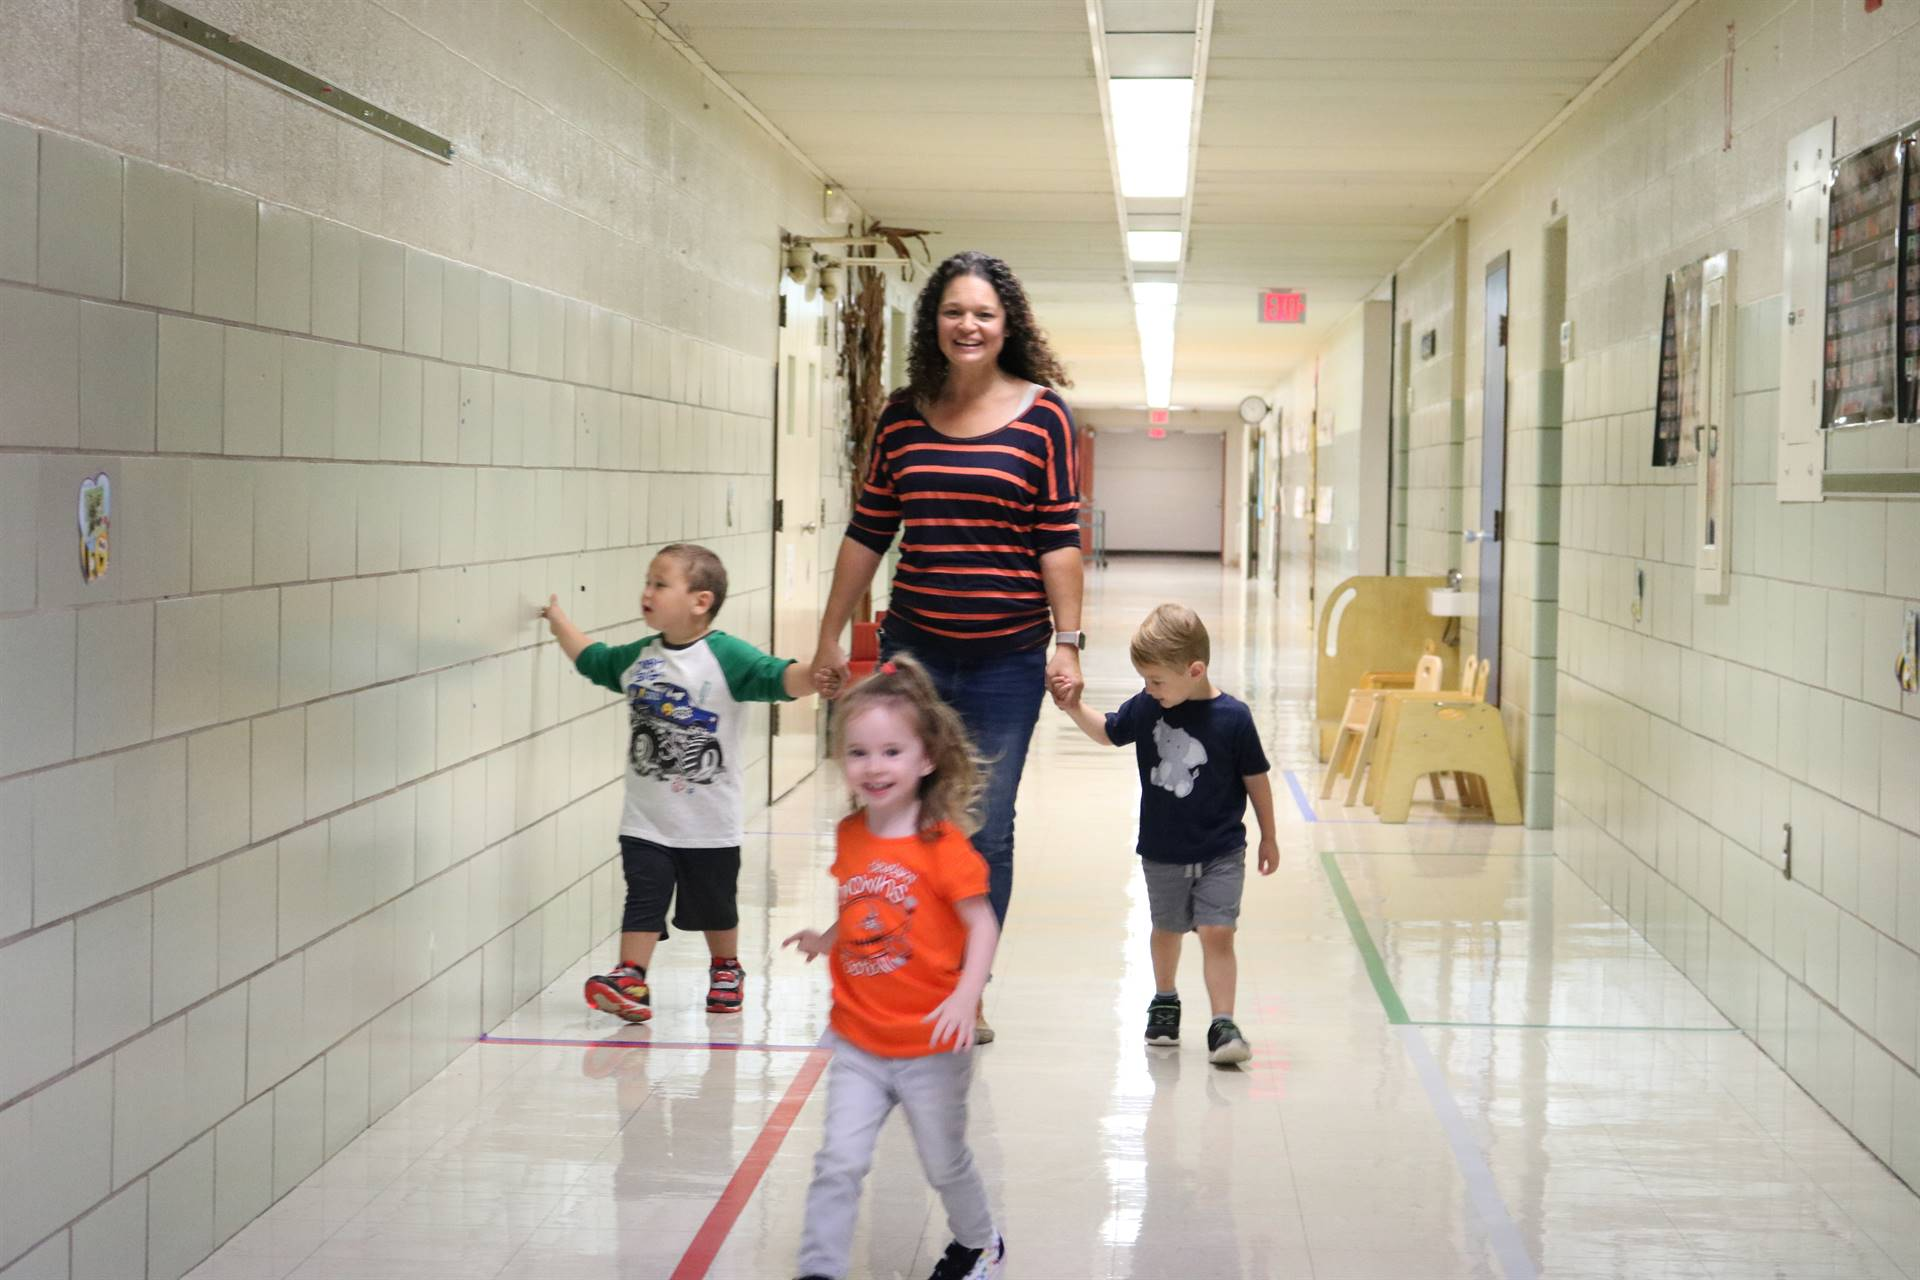 lady walking down hallway with 2 boys 1 girl